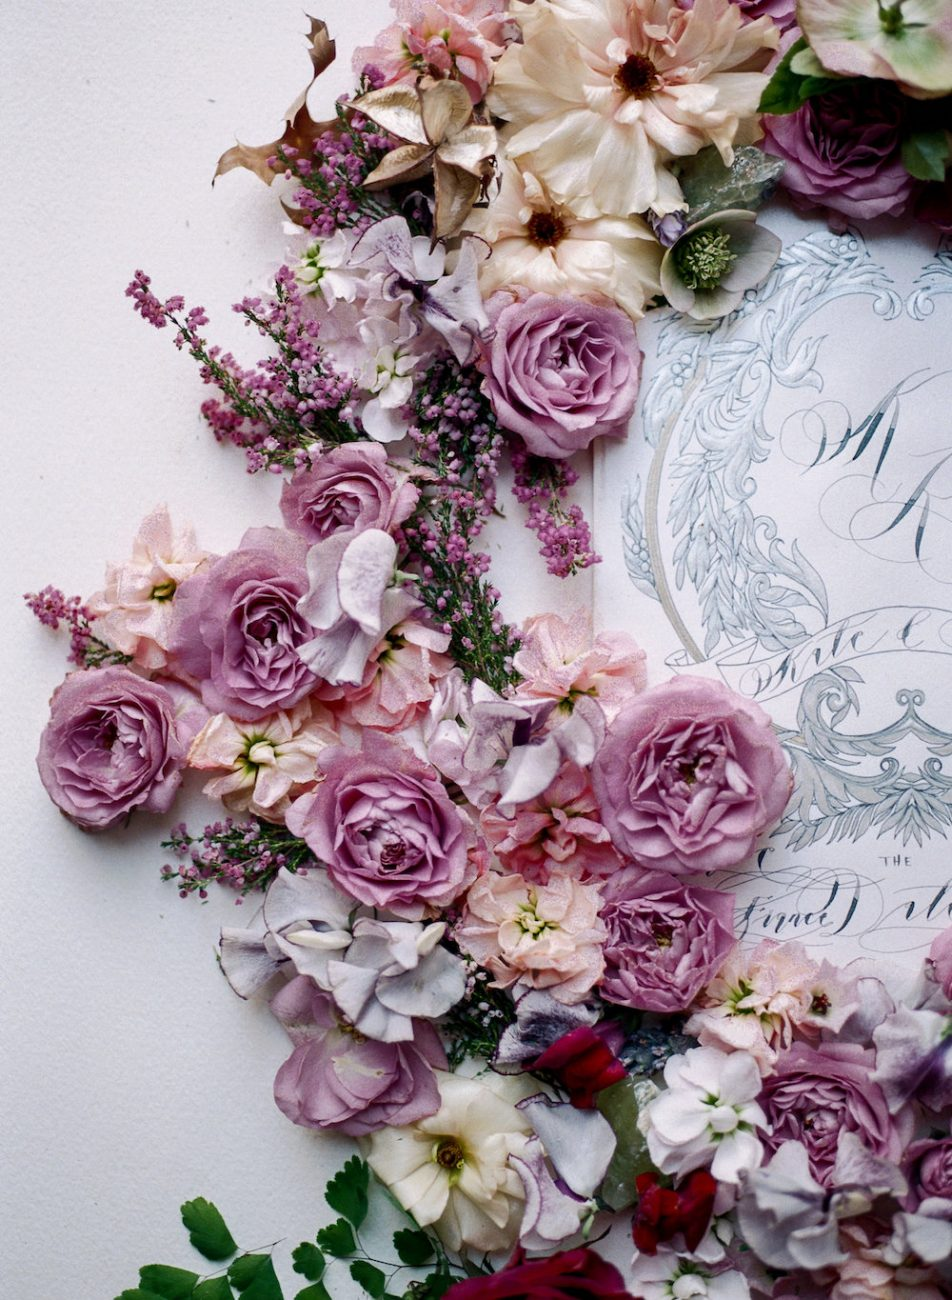 Hand Painted Wedding Invitations florals around silver painted details